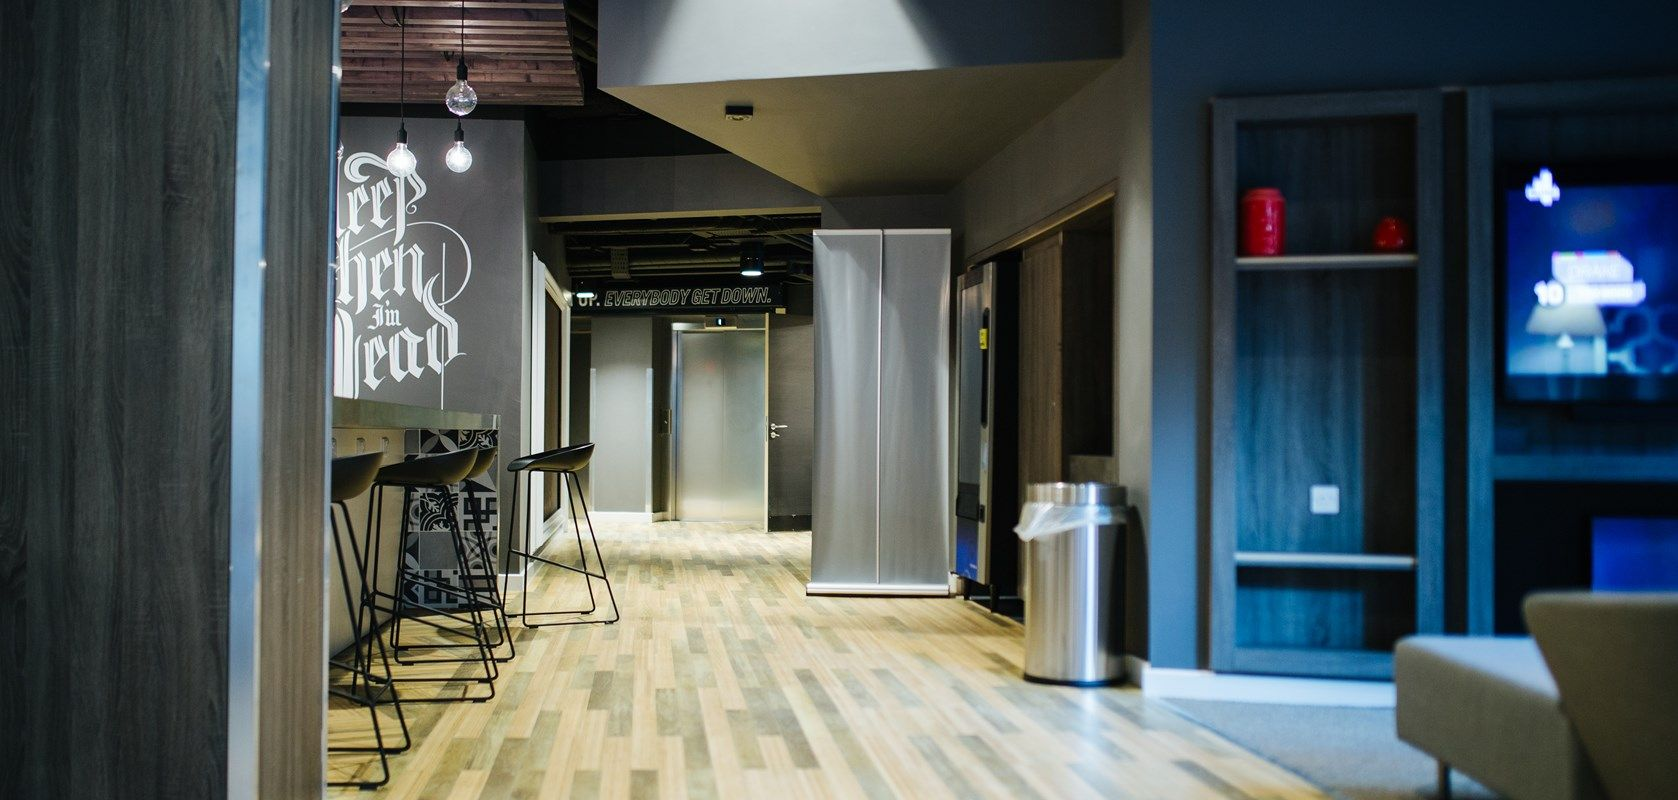 activision blizzard coolest offices 2016. Image Result For Vita Student | Photos Pinterest Photo Activision Blizzard Coolest Offices 2016 .